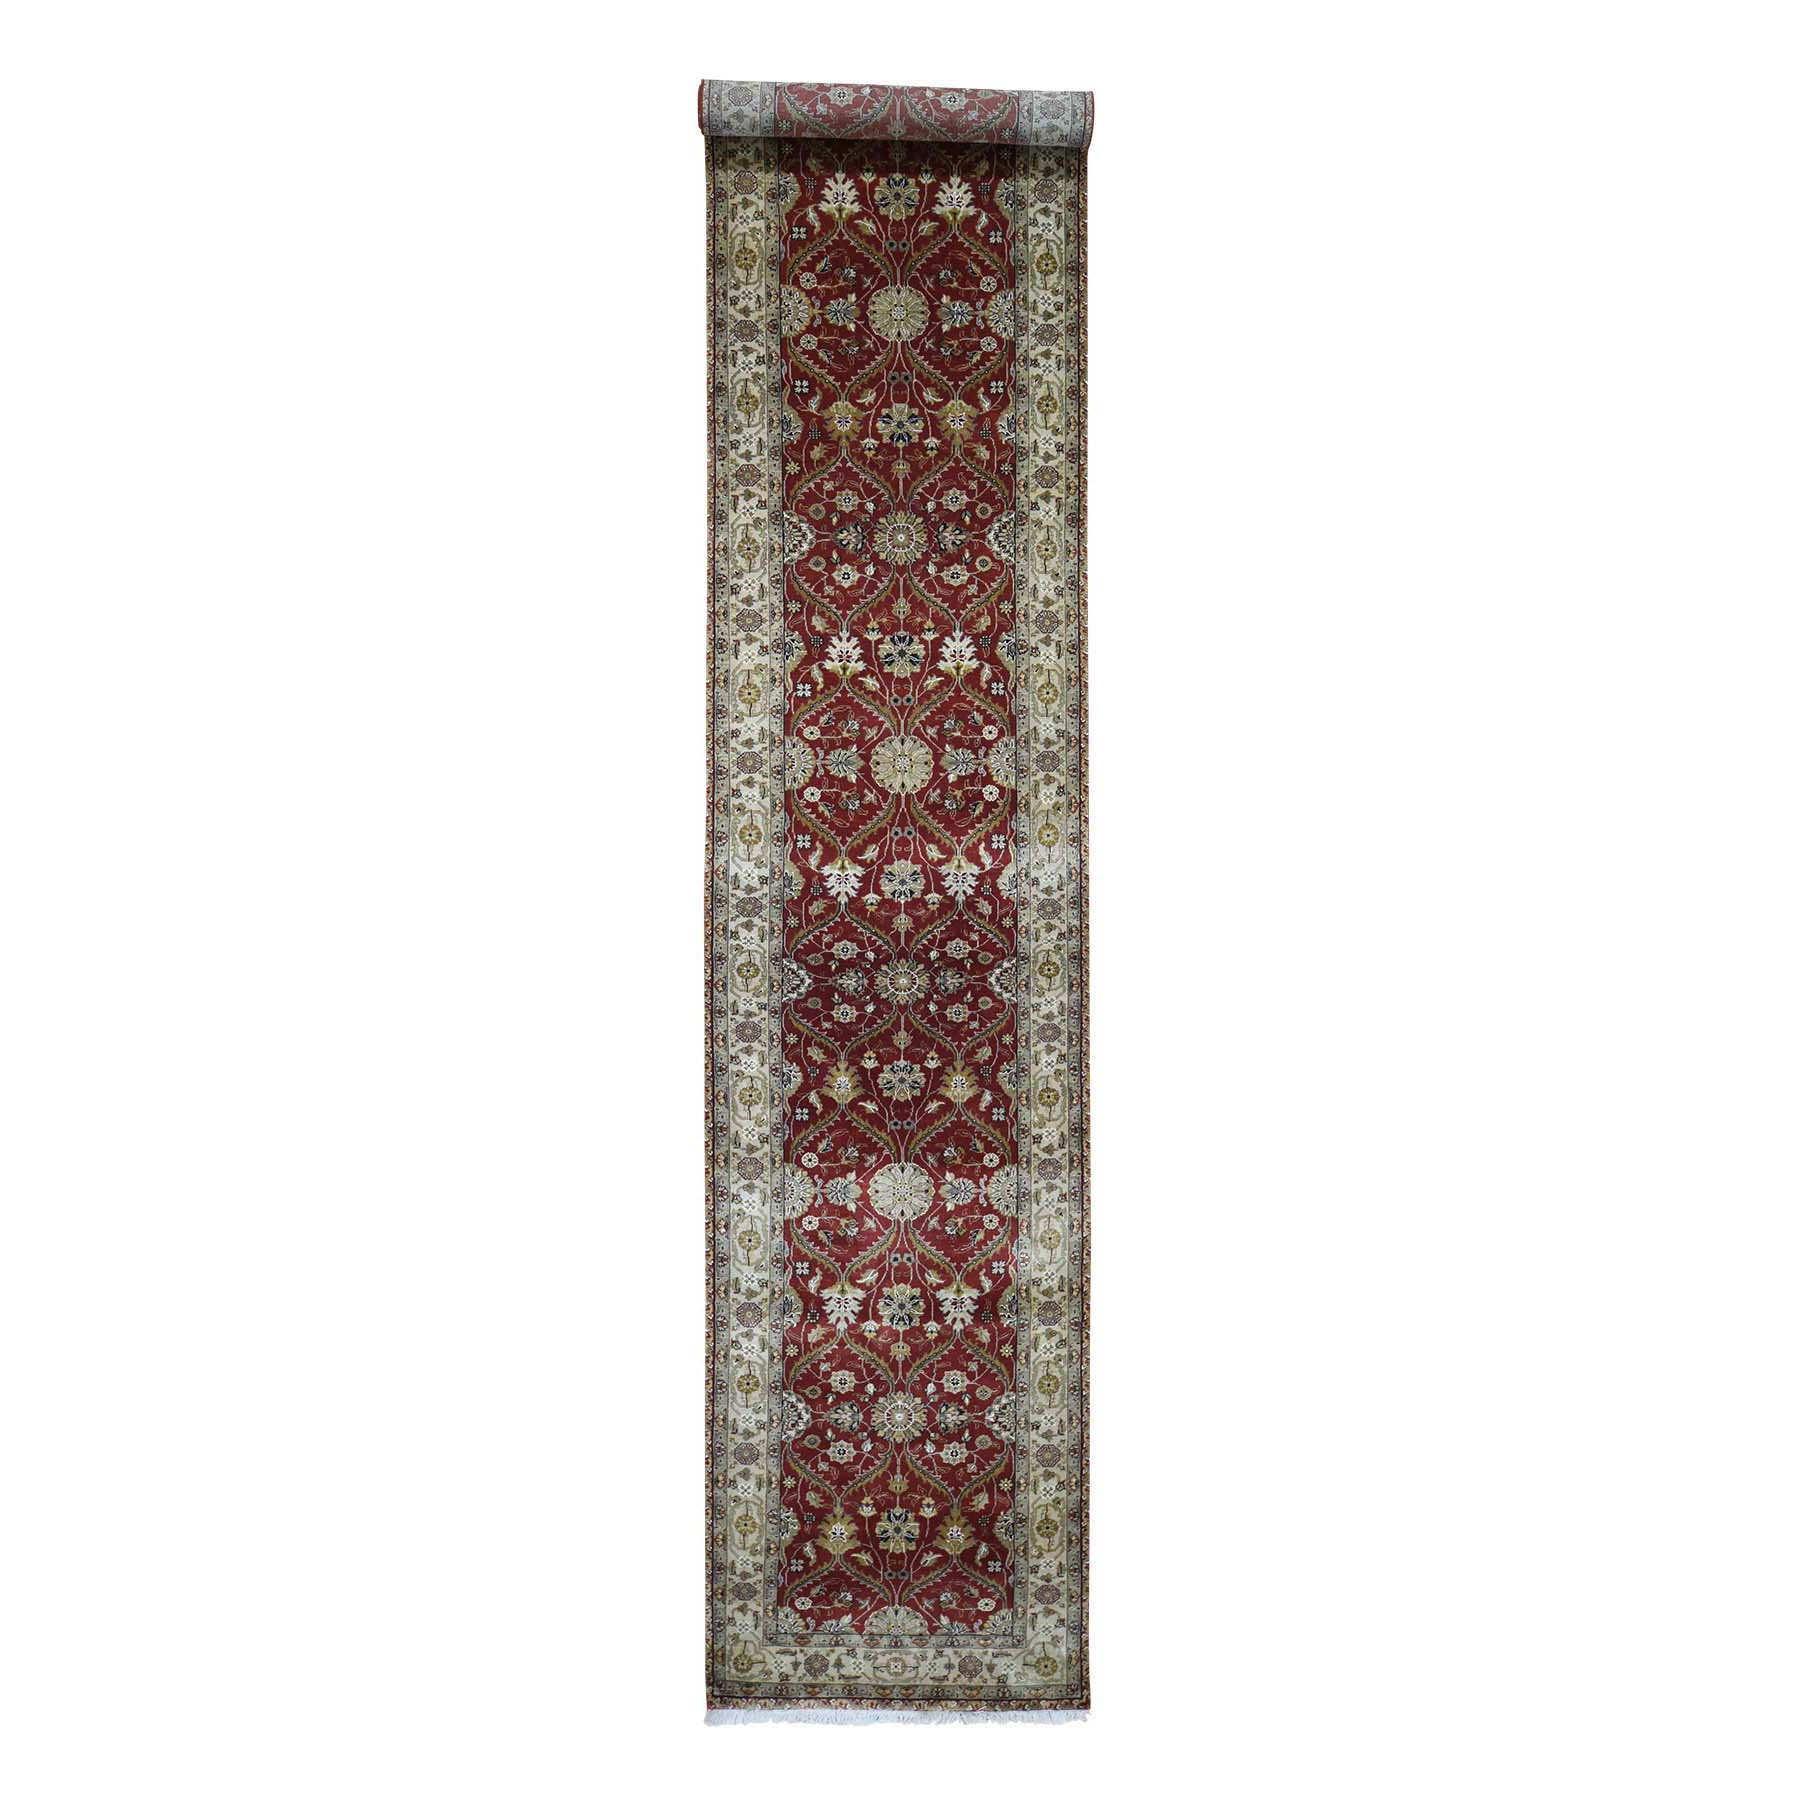 Pirniakan Collection Hand Knotted Red Rug No: 0187470